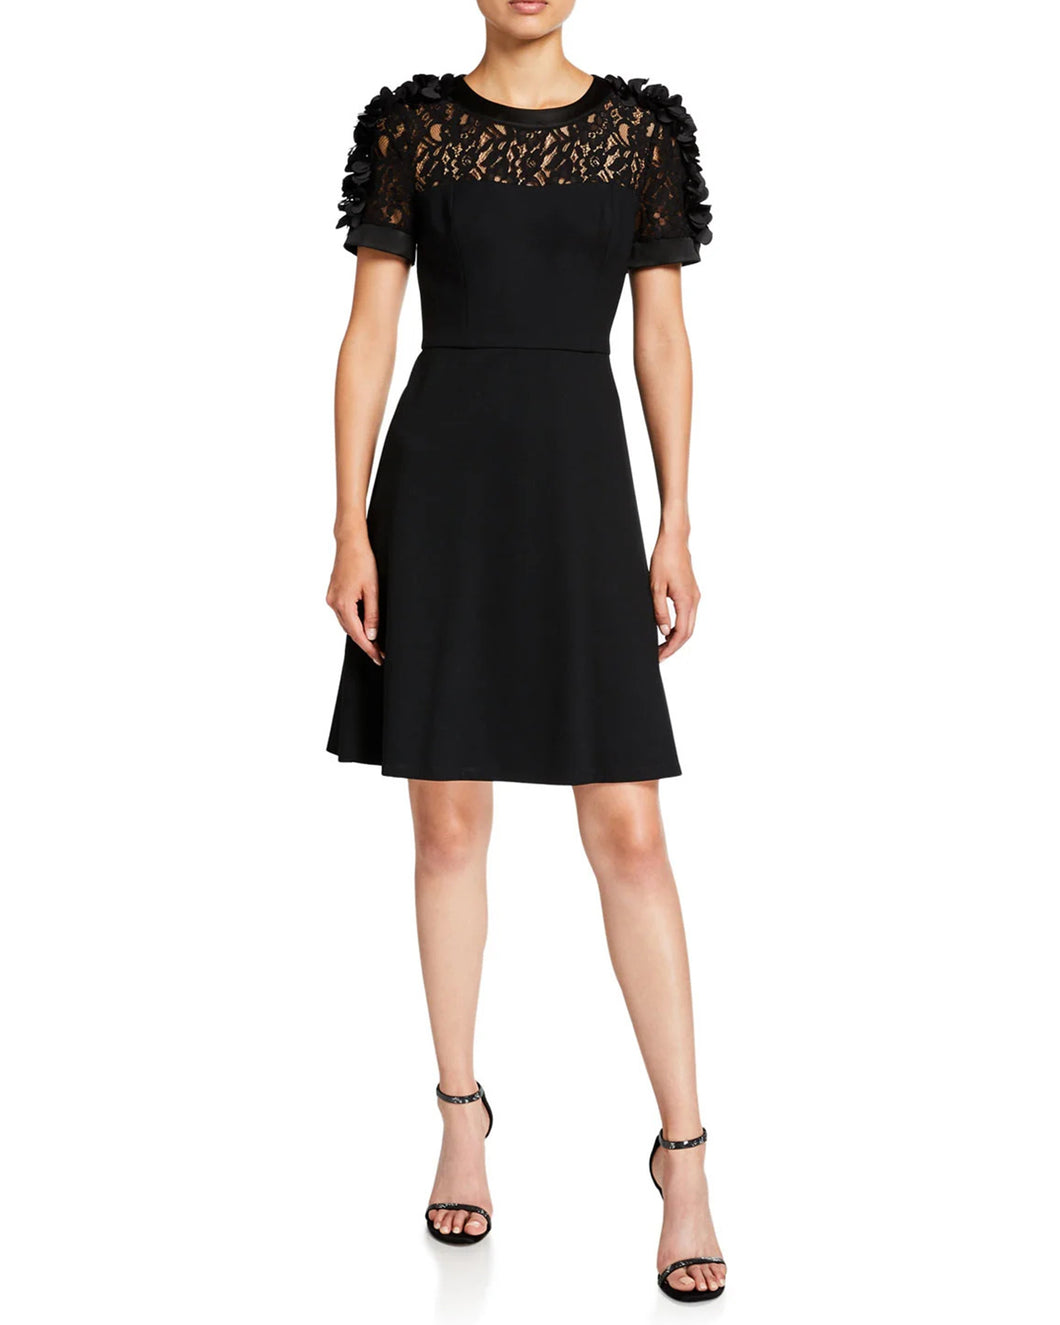 Ponte Knit Dress with Floral Applique on Sleeves